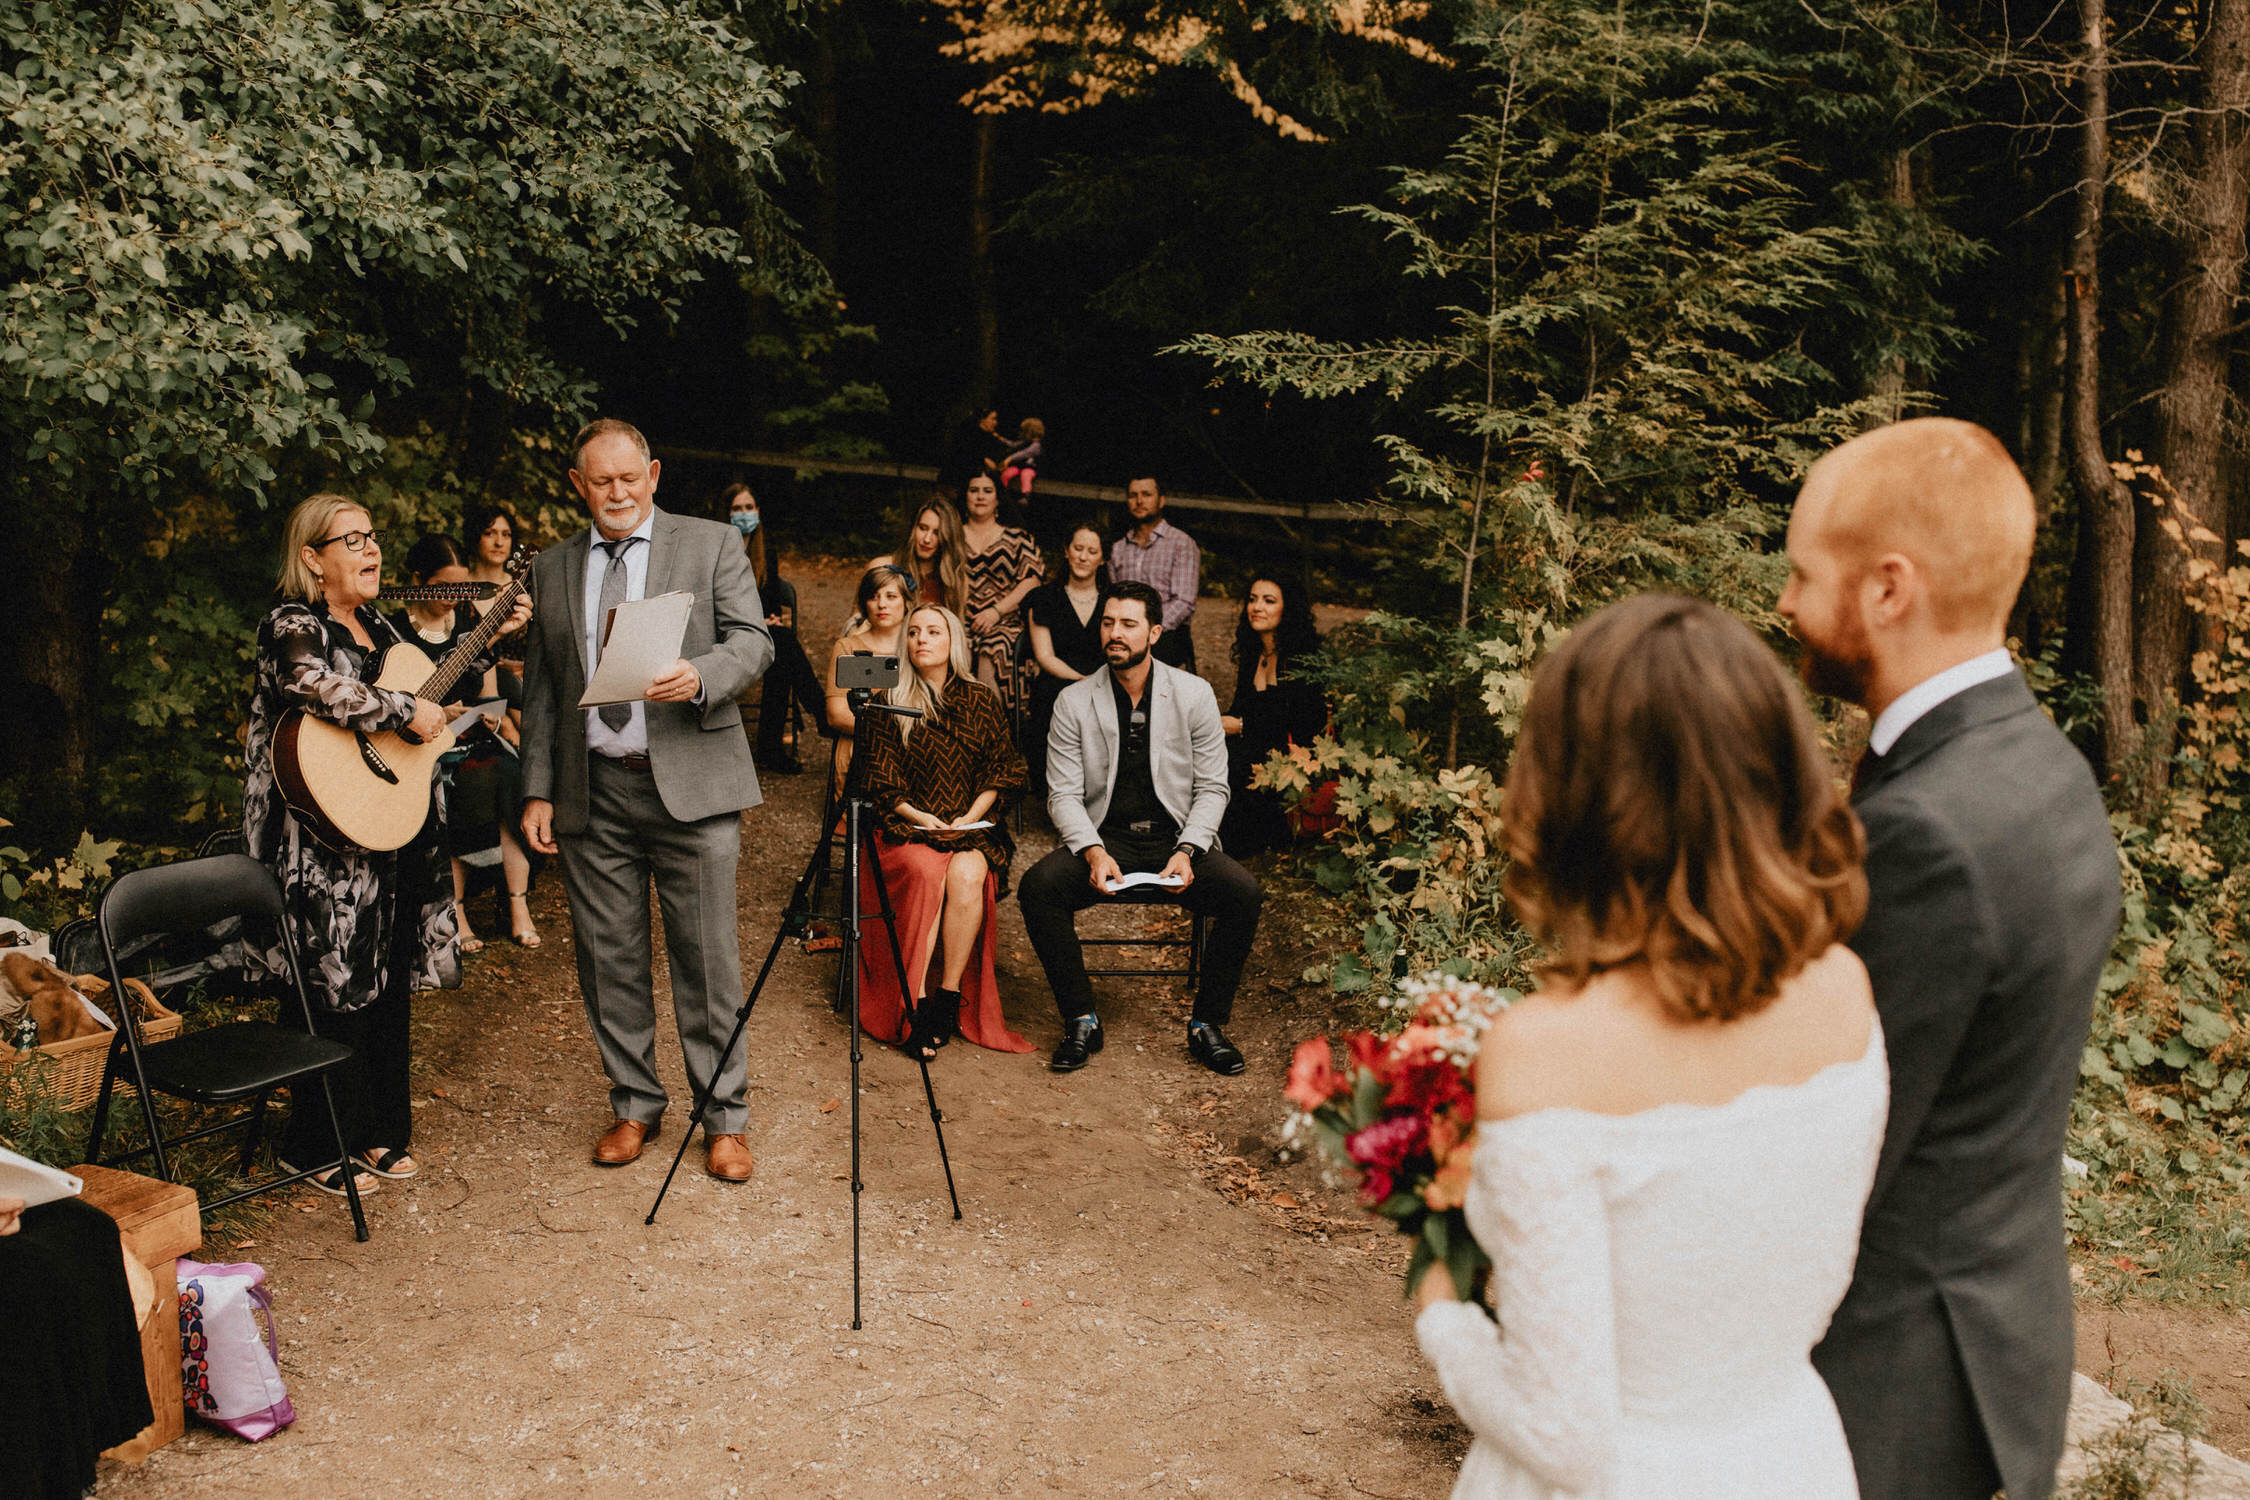 Parents sing to bride and groom during forest ceremony - Huron Natural Area Micro Wedding Kitchener, Ontario